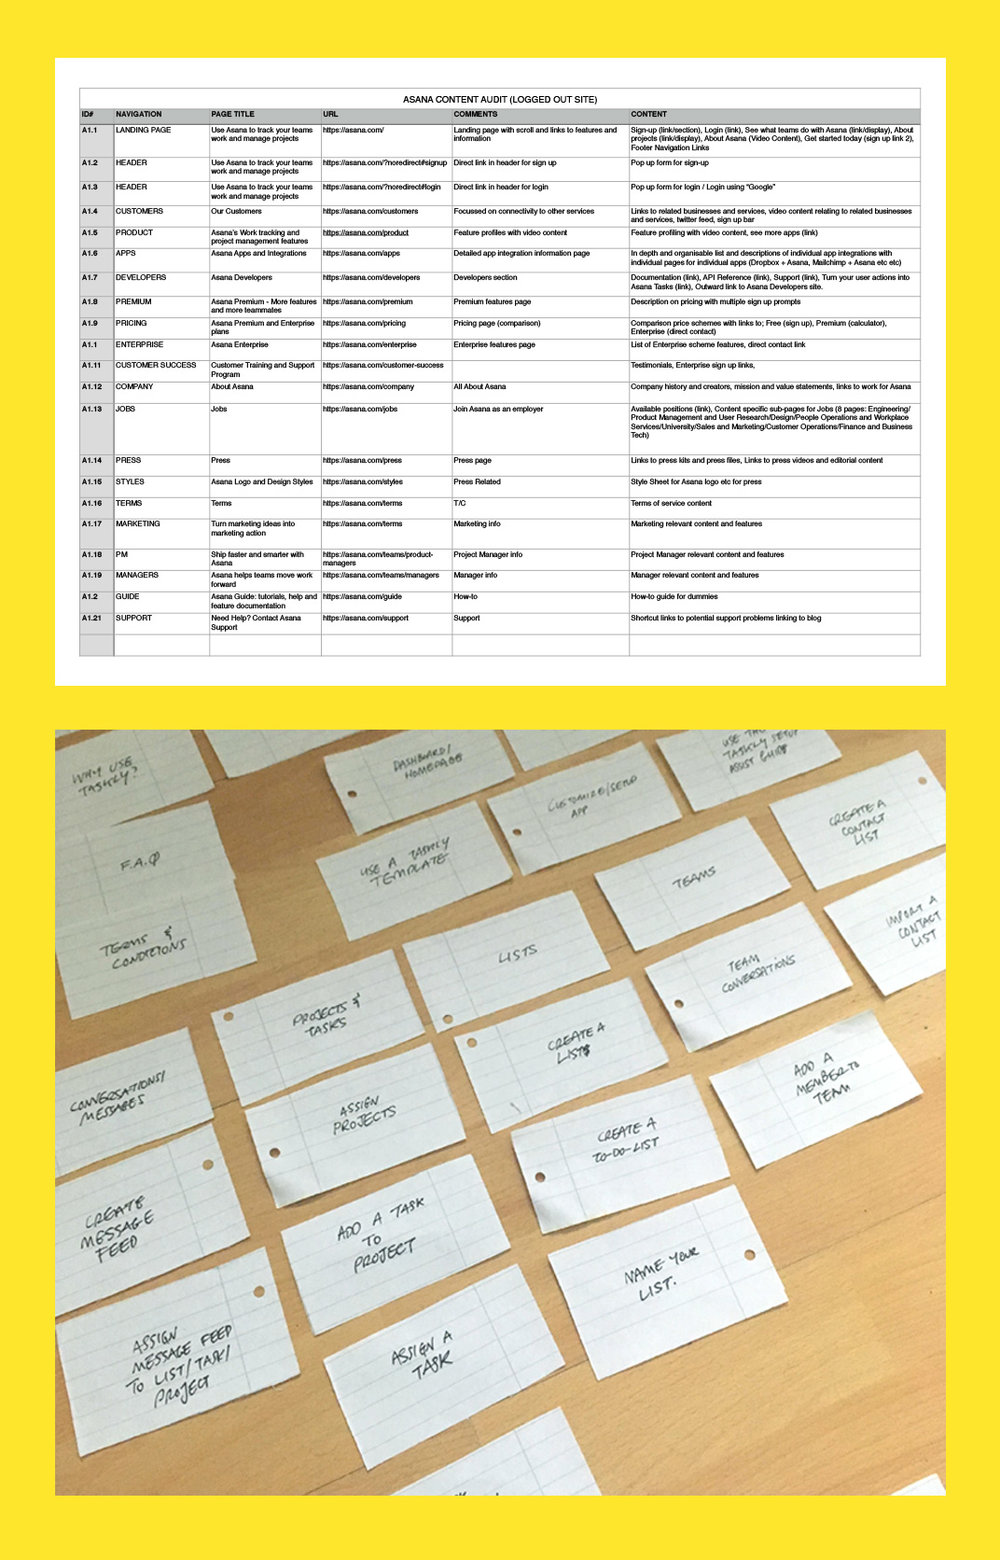 Content Audits (top), Card Sorting (bottom)